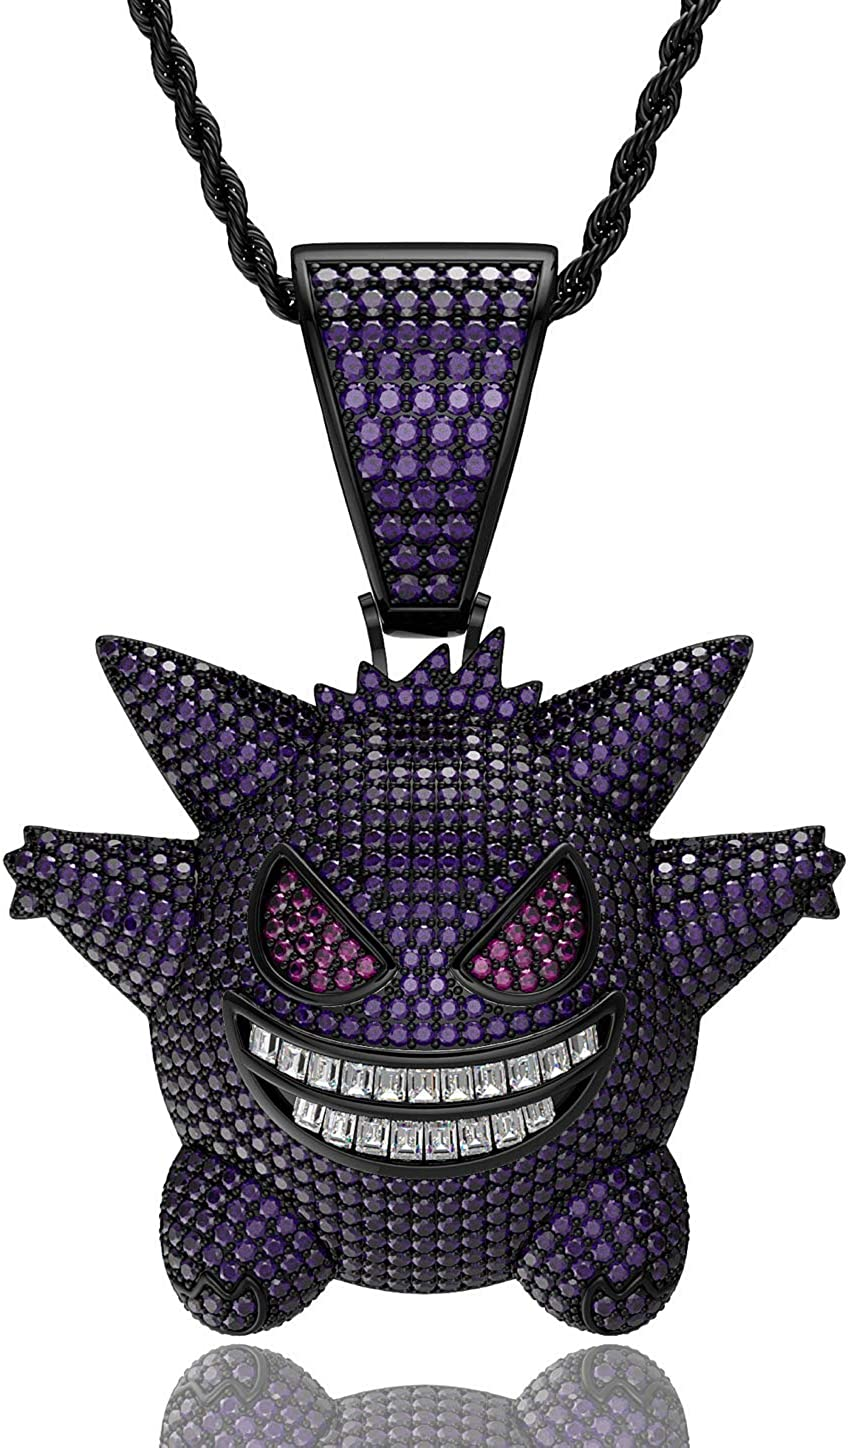 ICY FLARE - ICED OUT Gengar Pendant Necklace, White Gold and Purple Plated HIP HOP ICED OUT Bling Pokemon Gengar Choker Chain Necklace, Men and Women Pokemon Gift Jewelry for Rapper